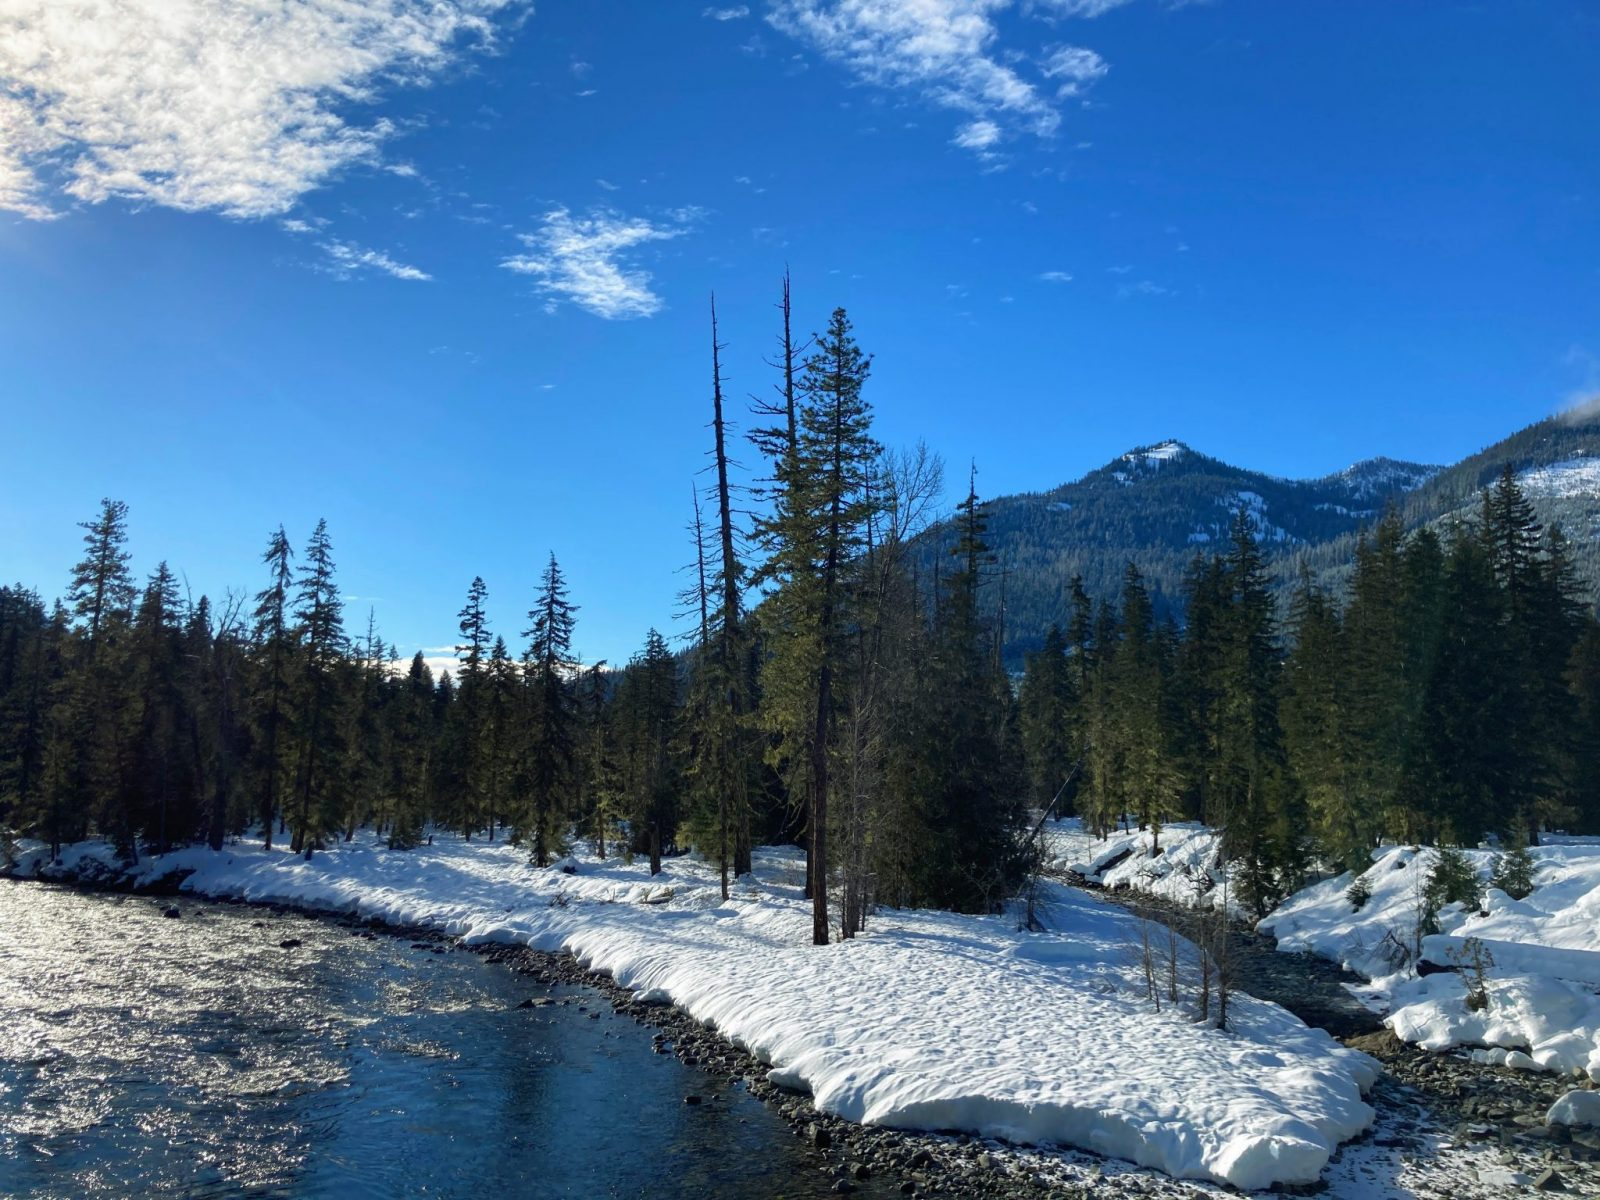 A sunny blue sky day at the salmon la sac sno park. There is a river with snow and forest around it, and distant forested mountains.